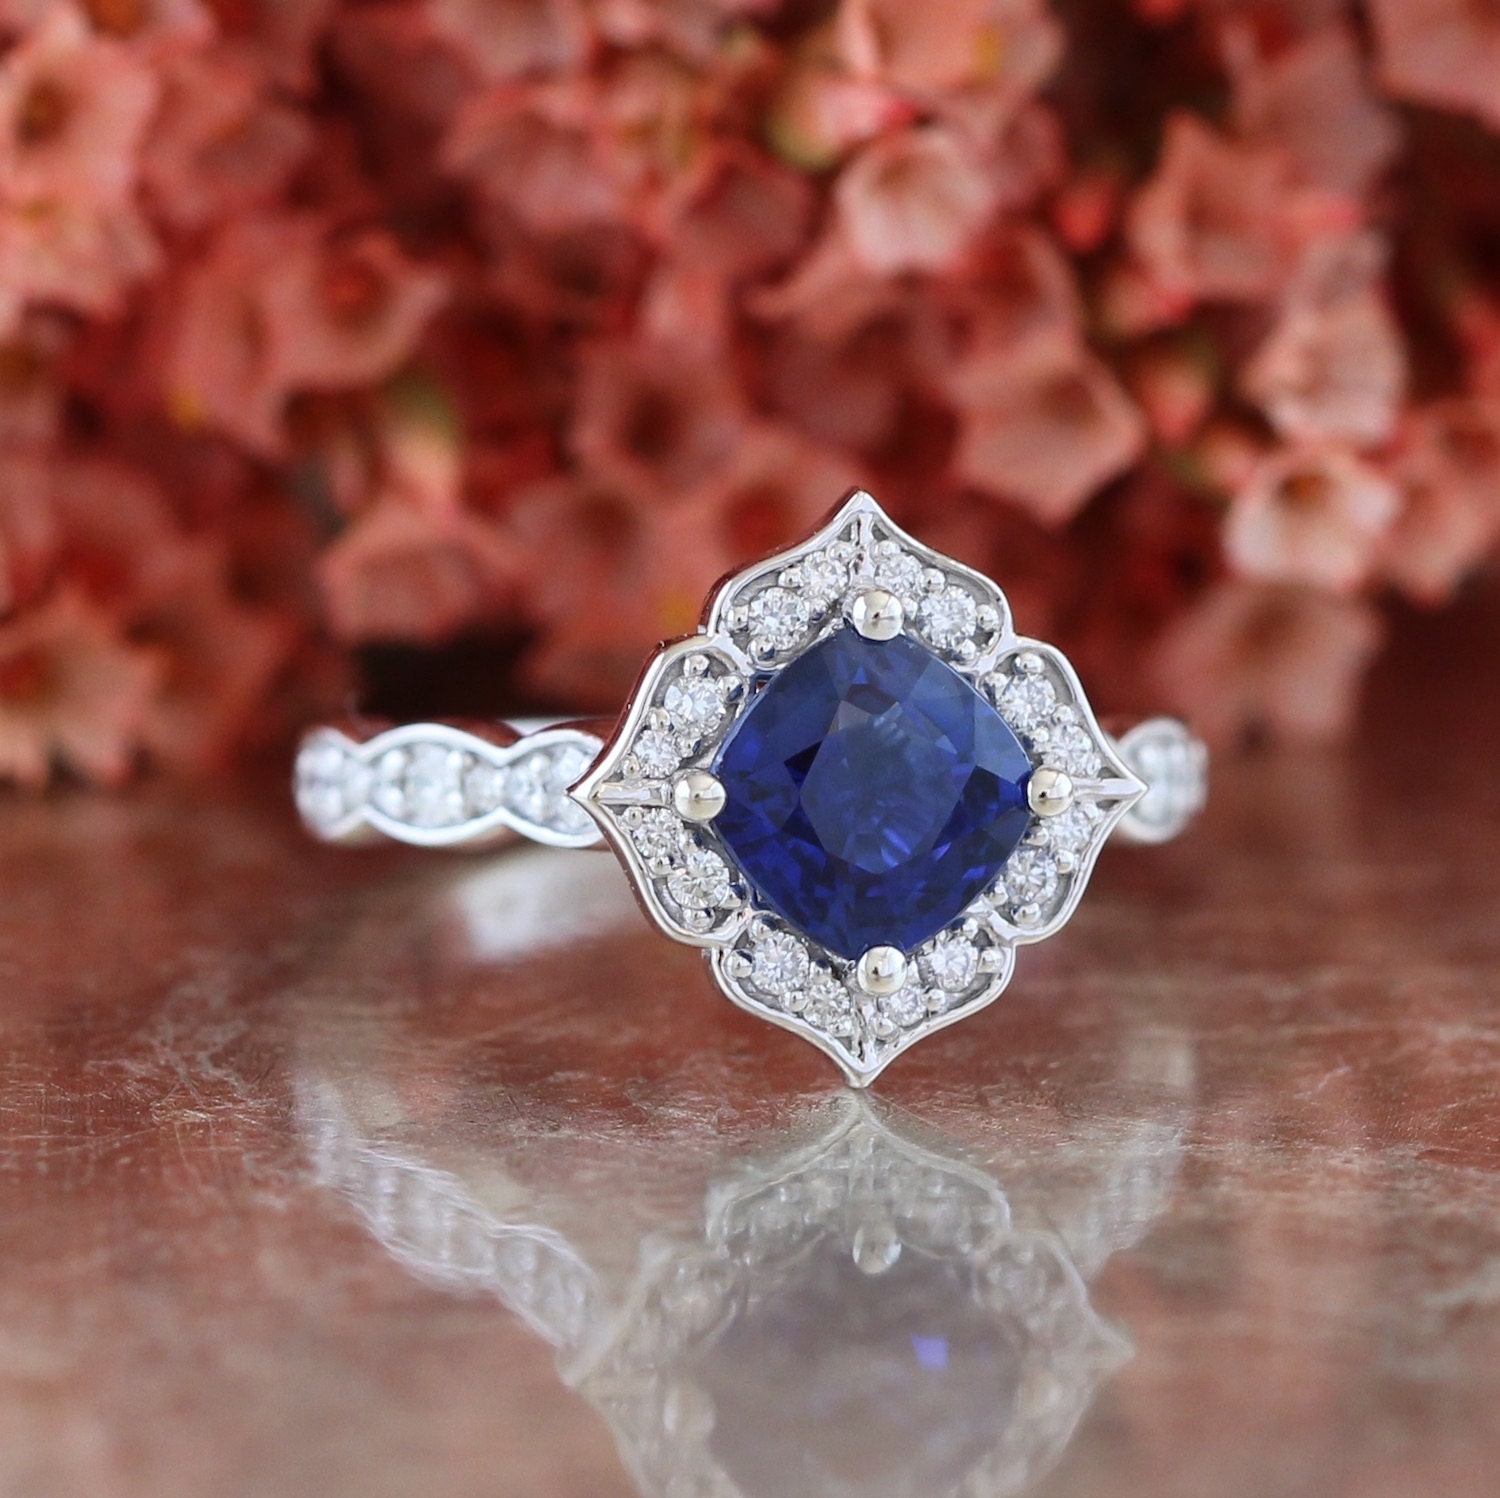 Vintage Floral Sapphire Engagement Ring in 14k White Gold